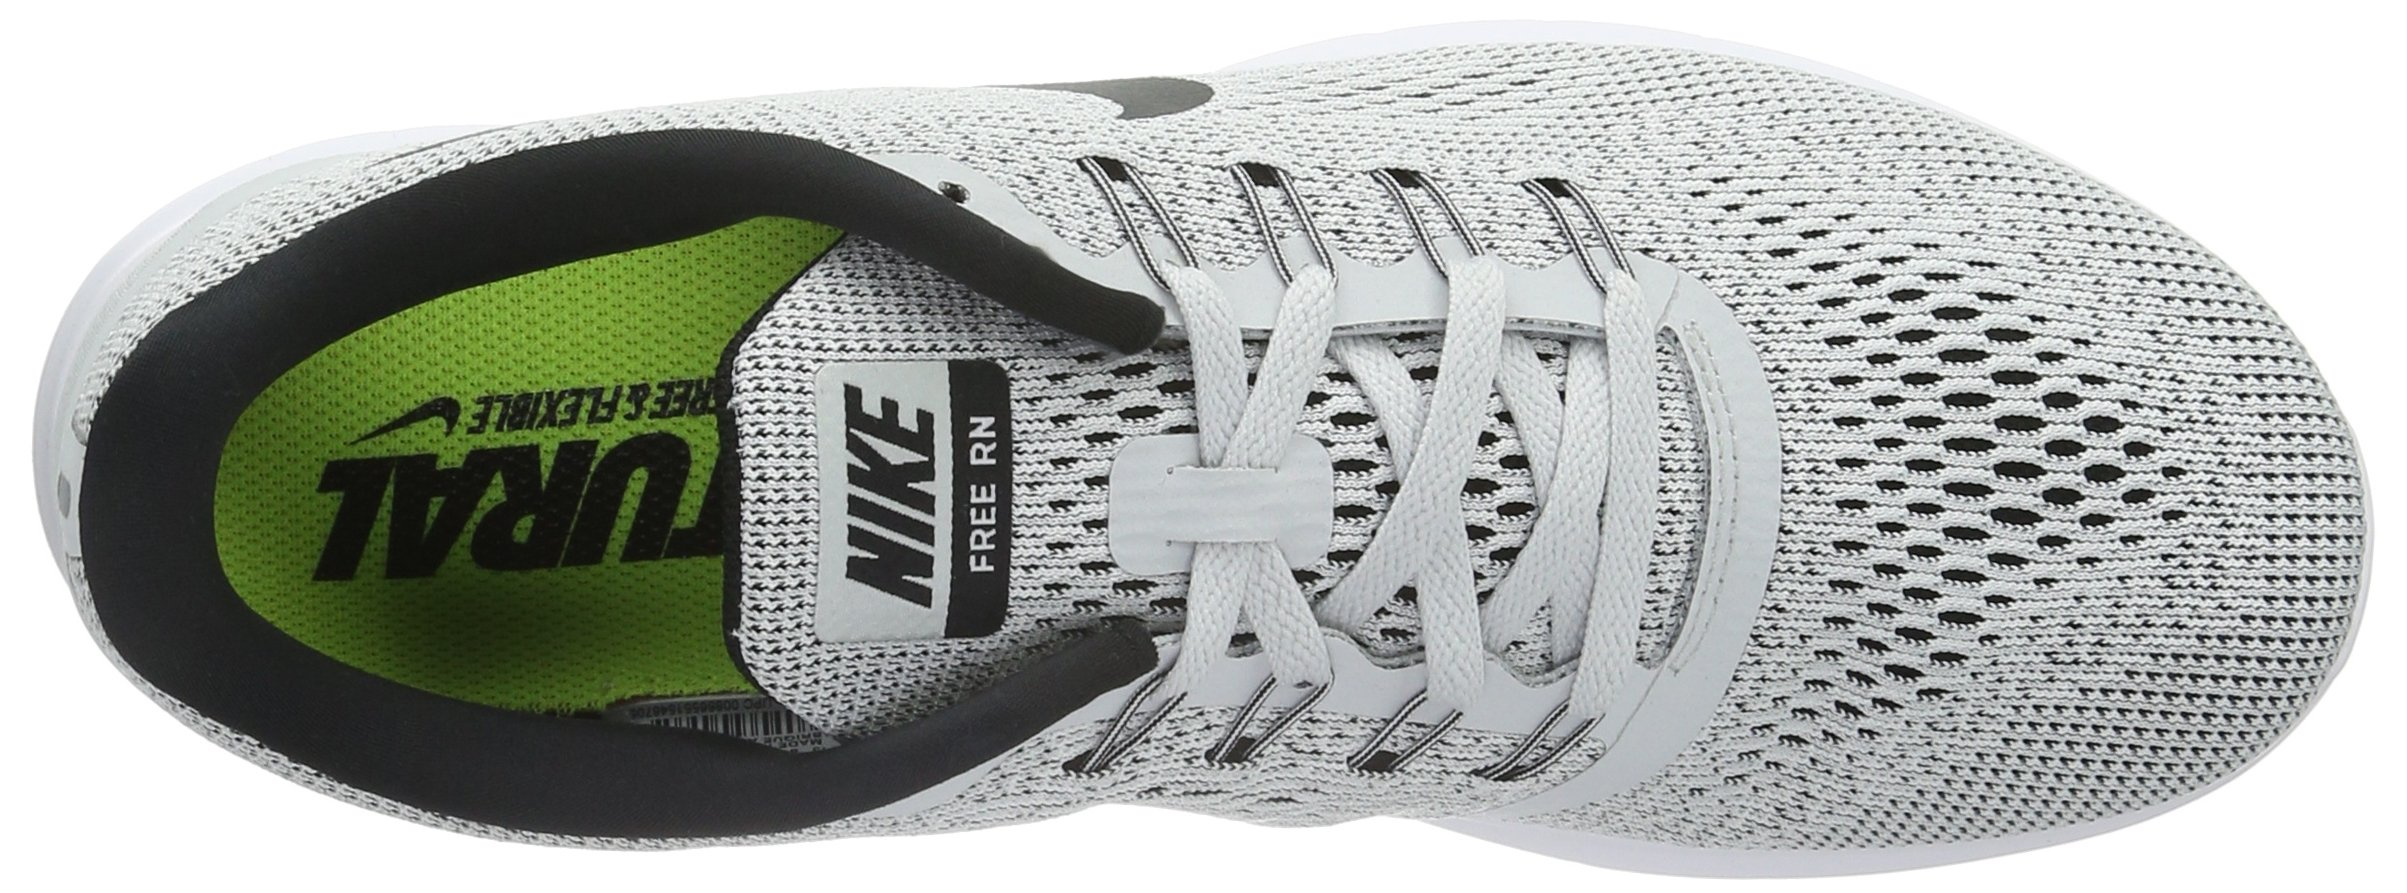 Nike Womens Free Rn Low Top Lace Up Running Sneaker, White, Size 5.5 by Nike (Image #6)